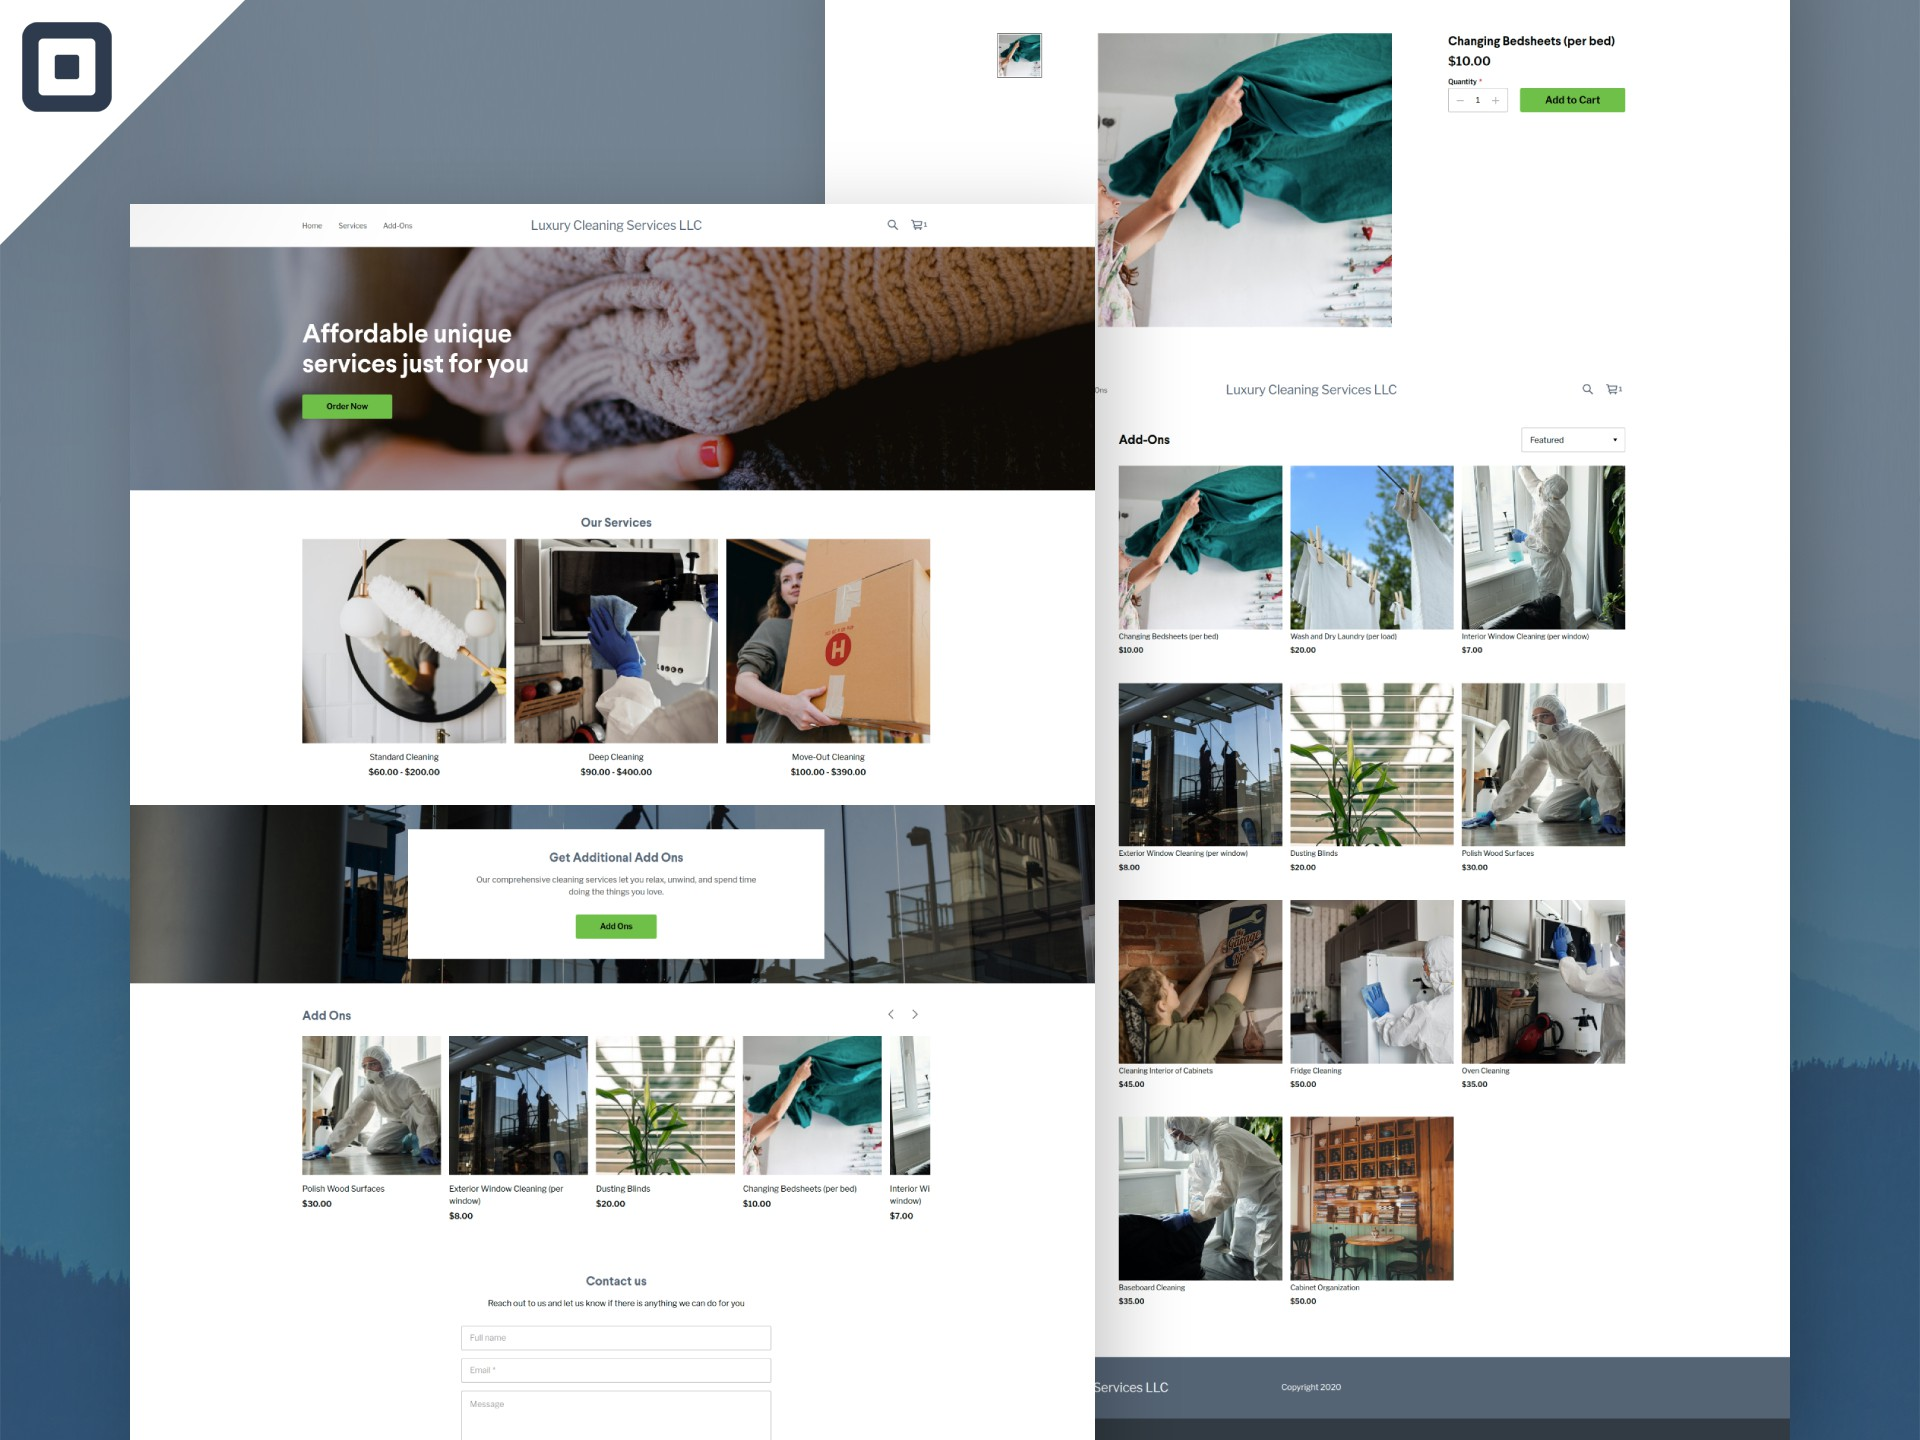 Luxury Cleaning services LLC need web page